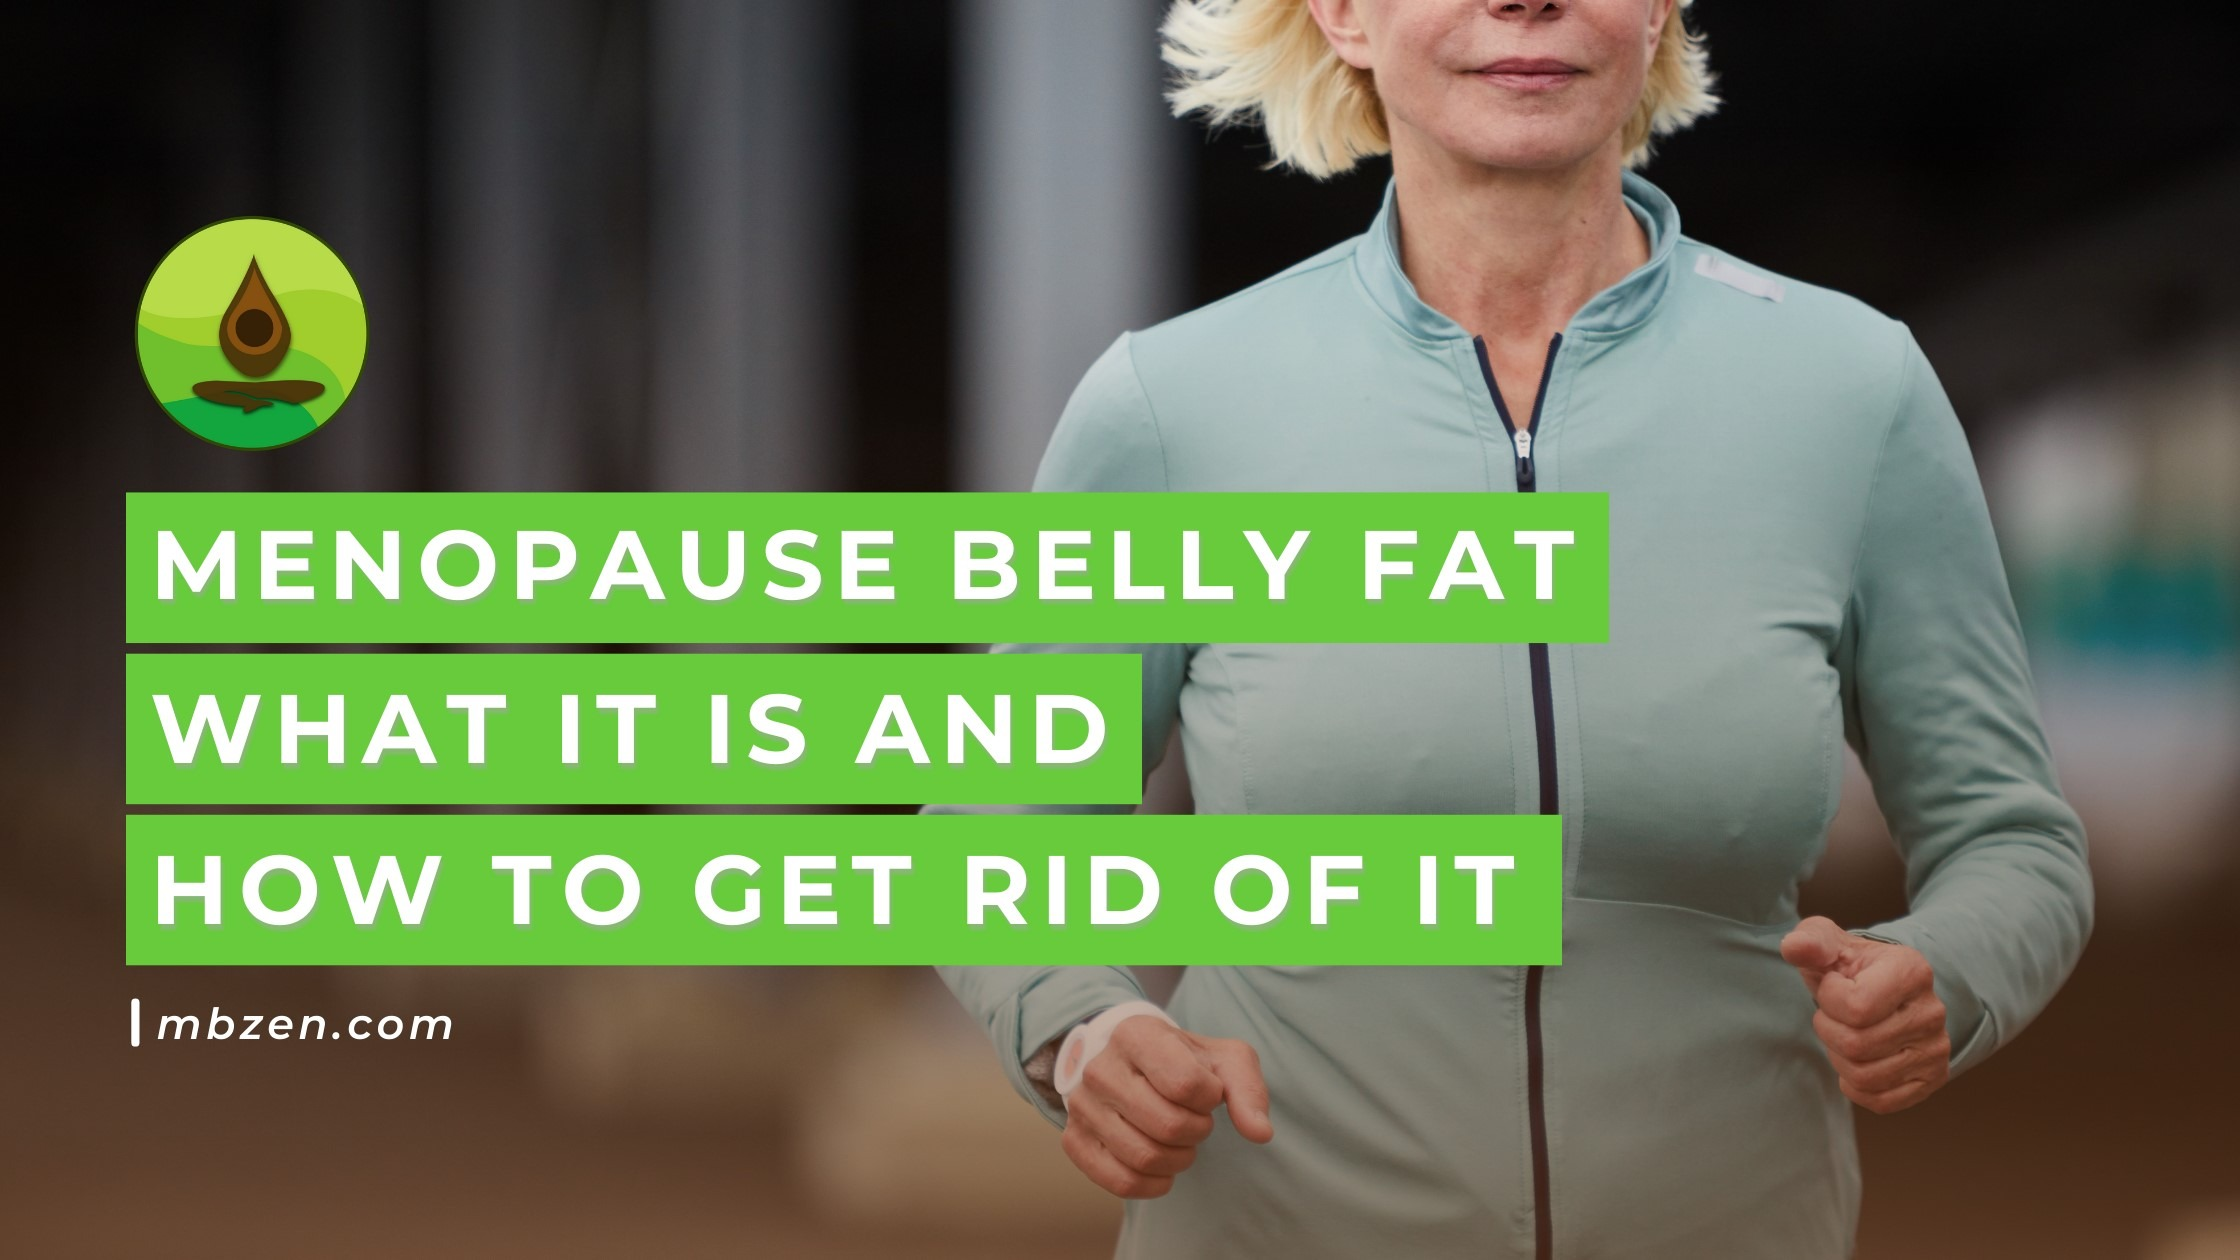 how to get rid of menopause belly fat